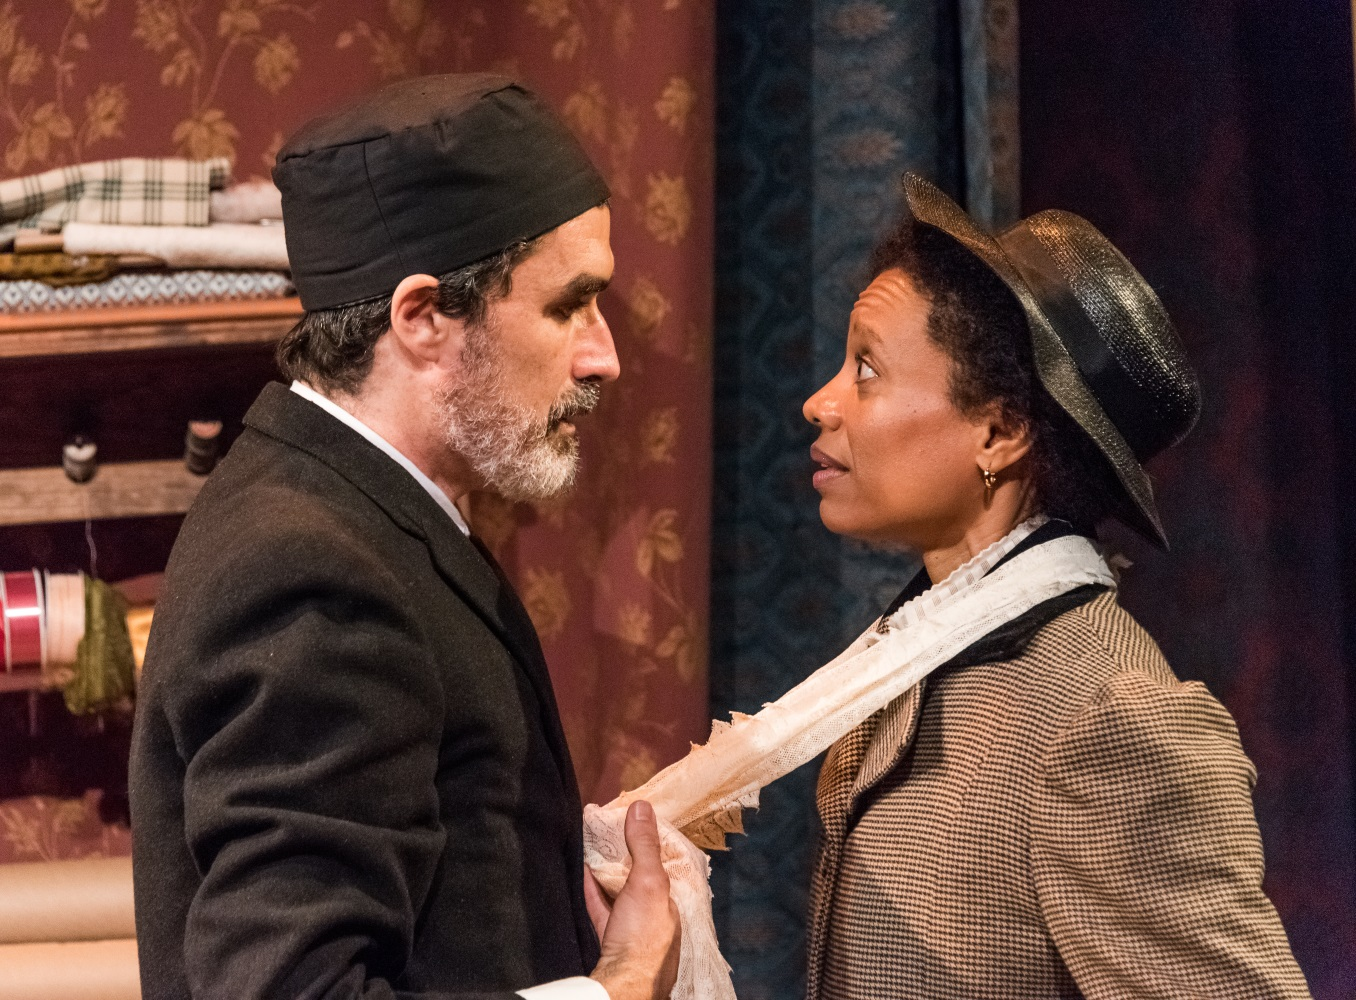 Stagestruck: Gladrags and Ragtime at Shakespeare & Company